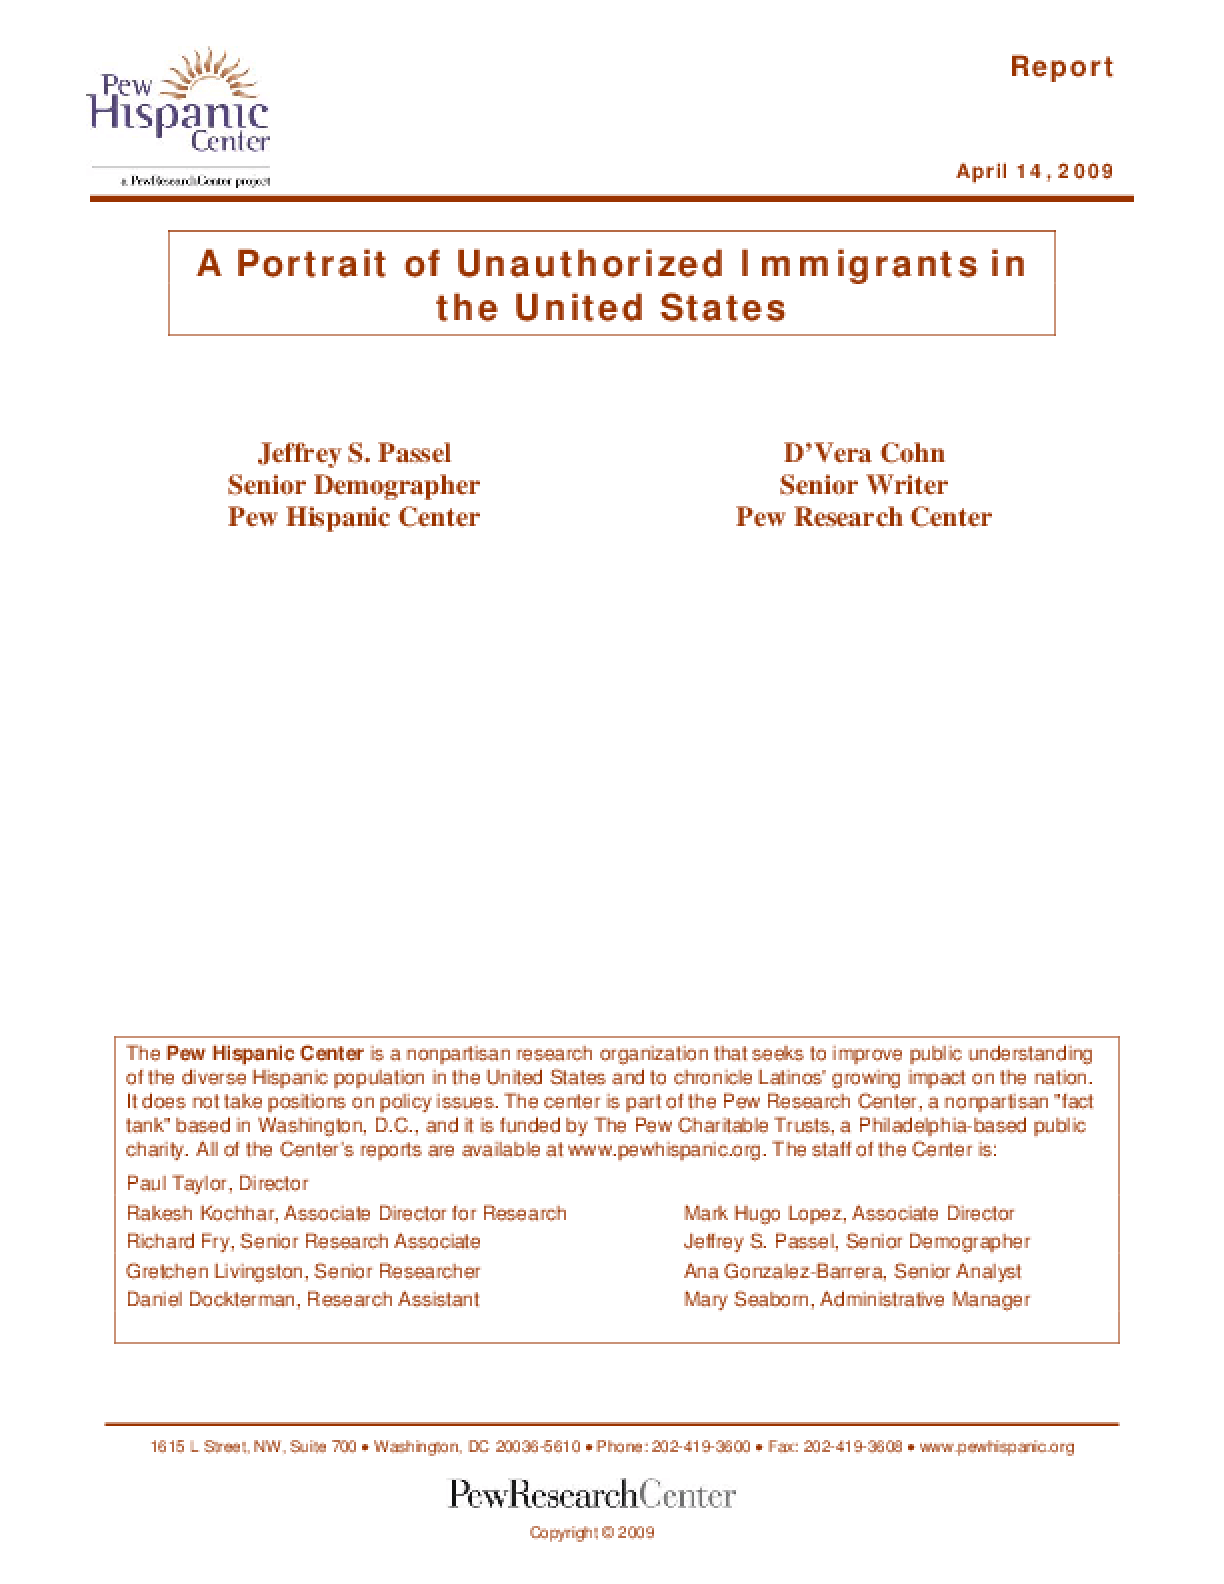 A Portrait of Unauthorized Immigrants in the United States